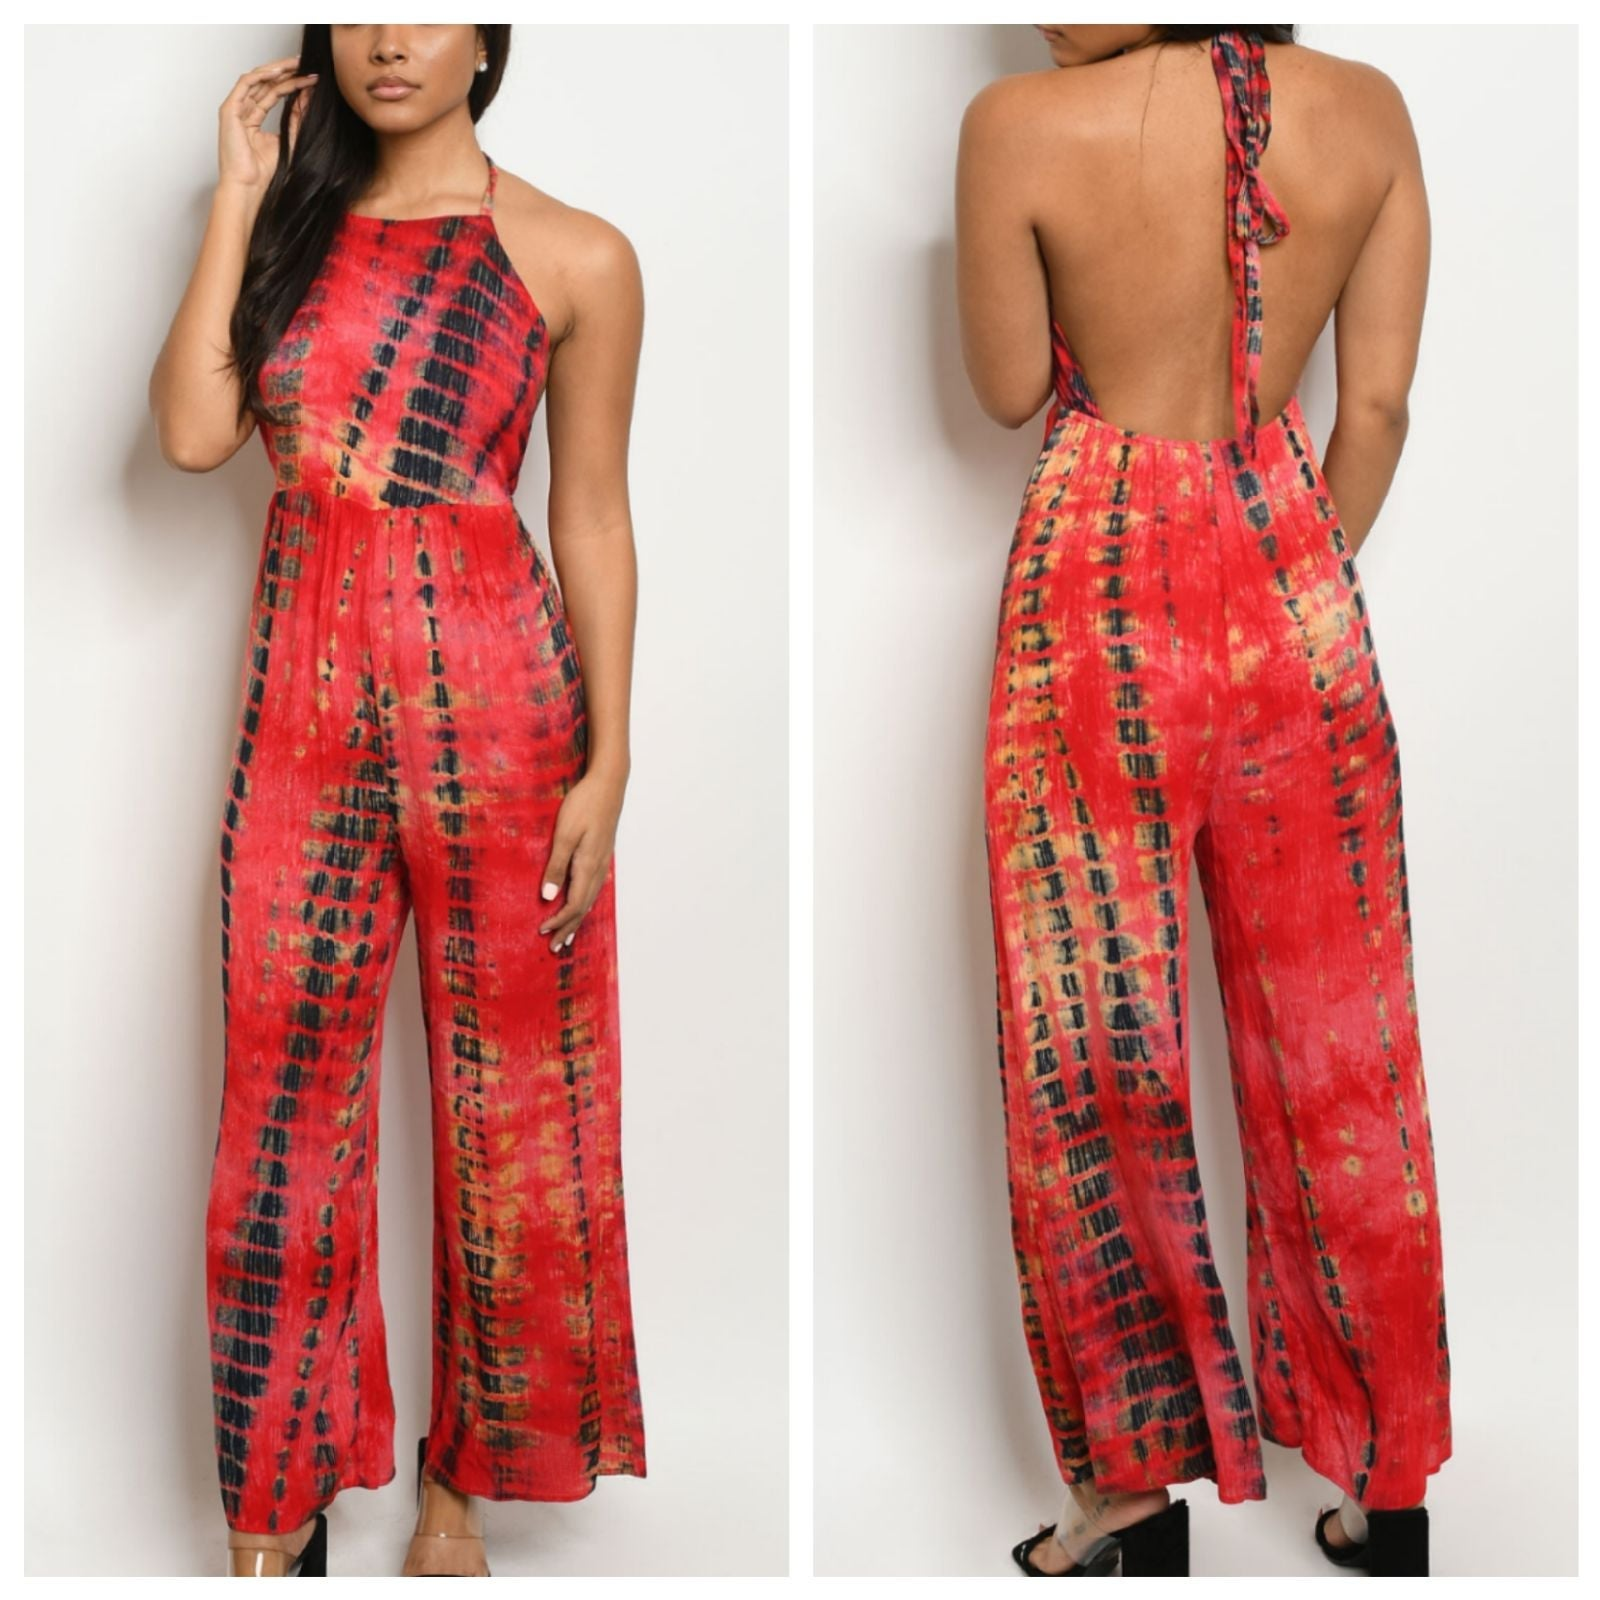 Red Tie Dye Backless Flare Leg Jumpsuit